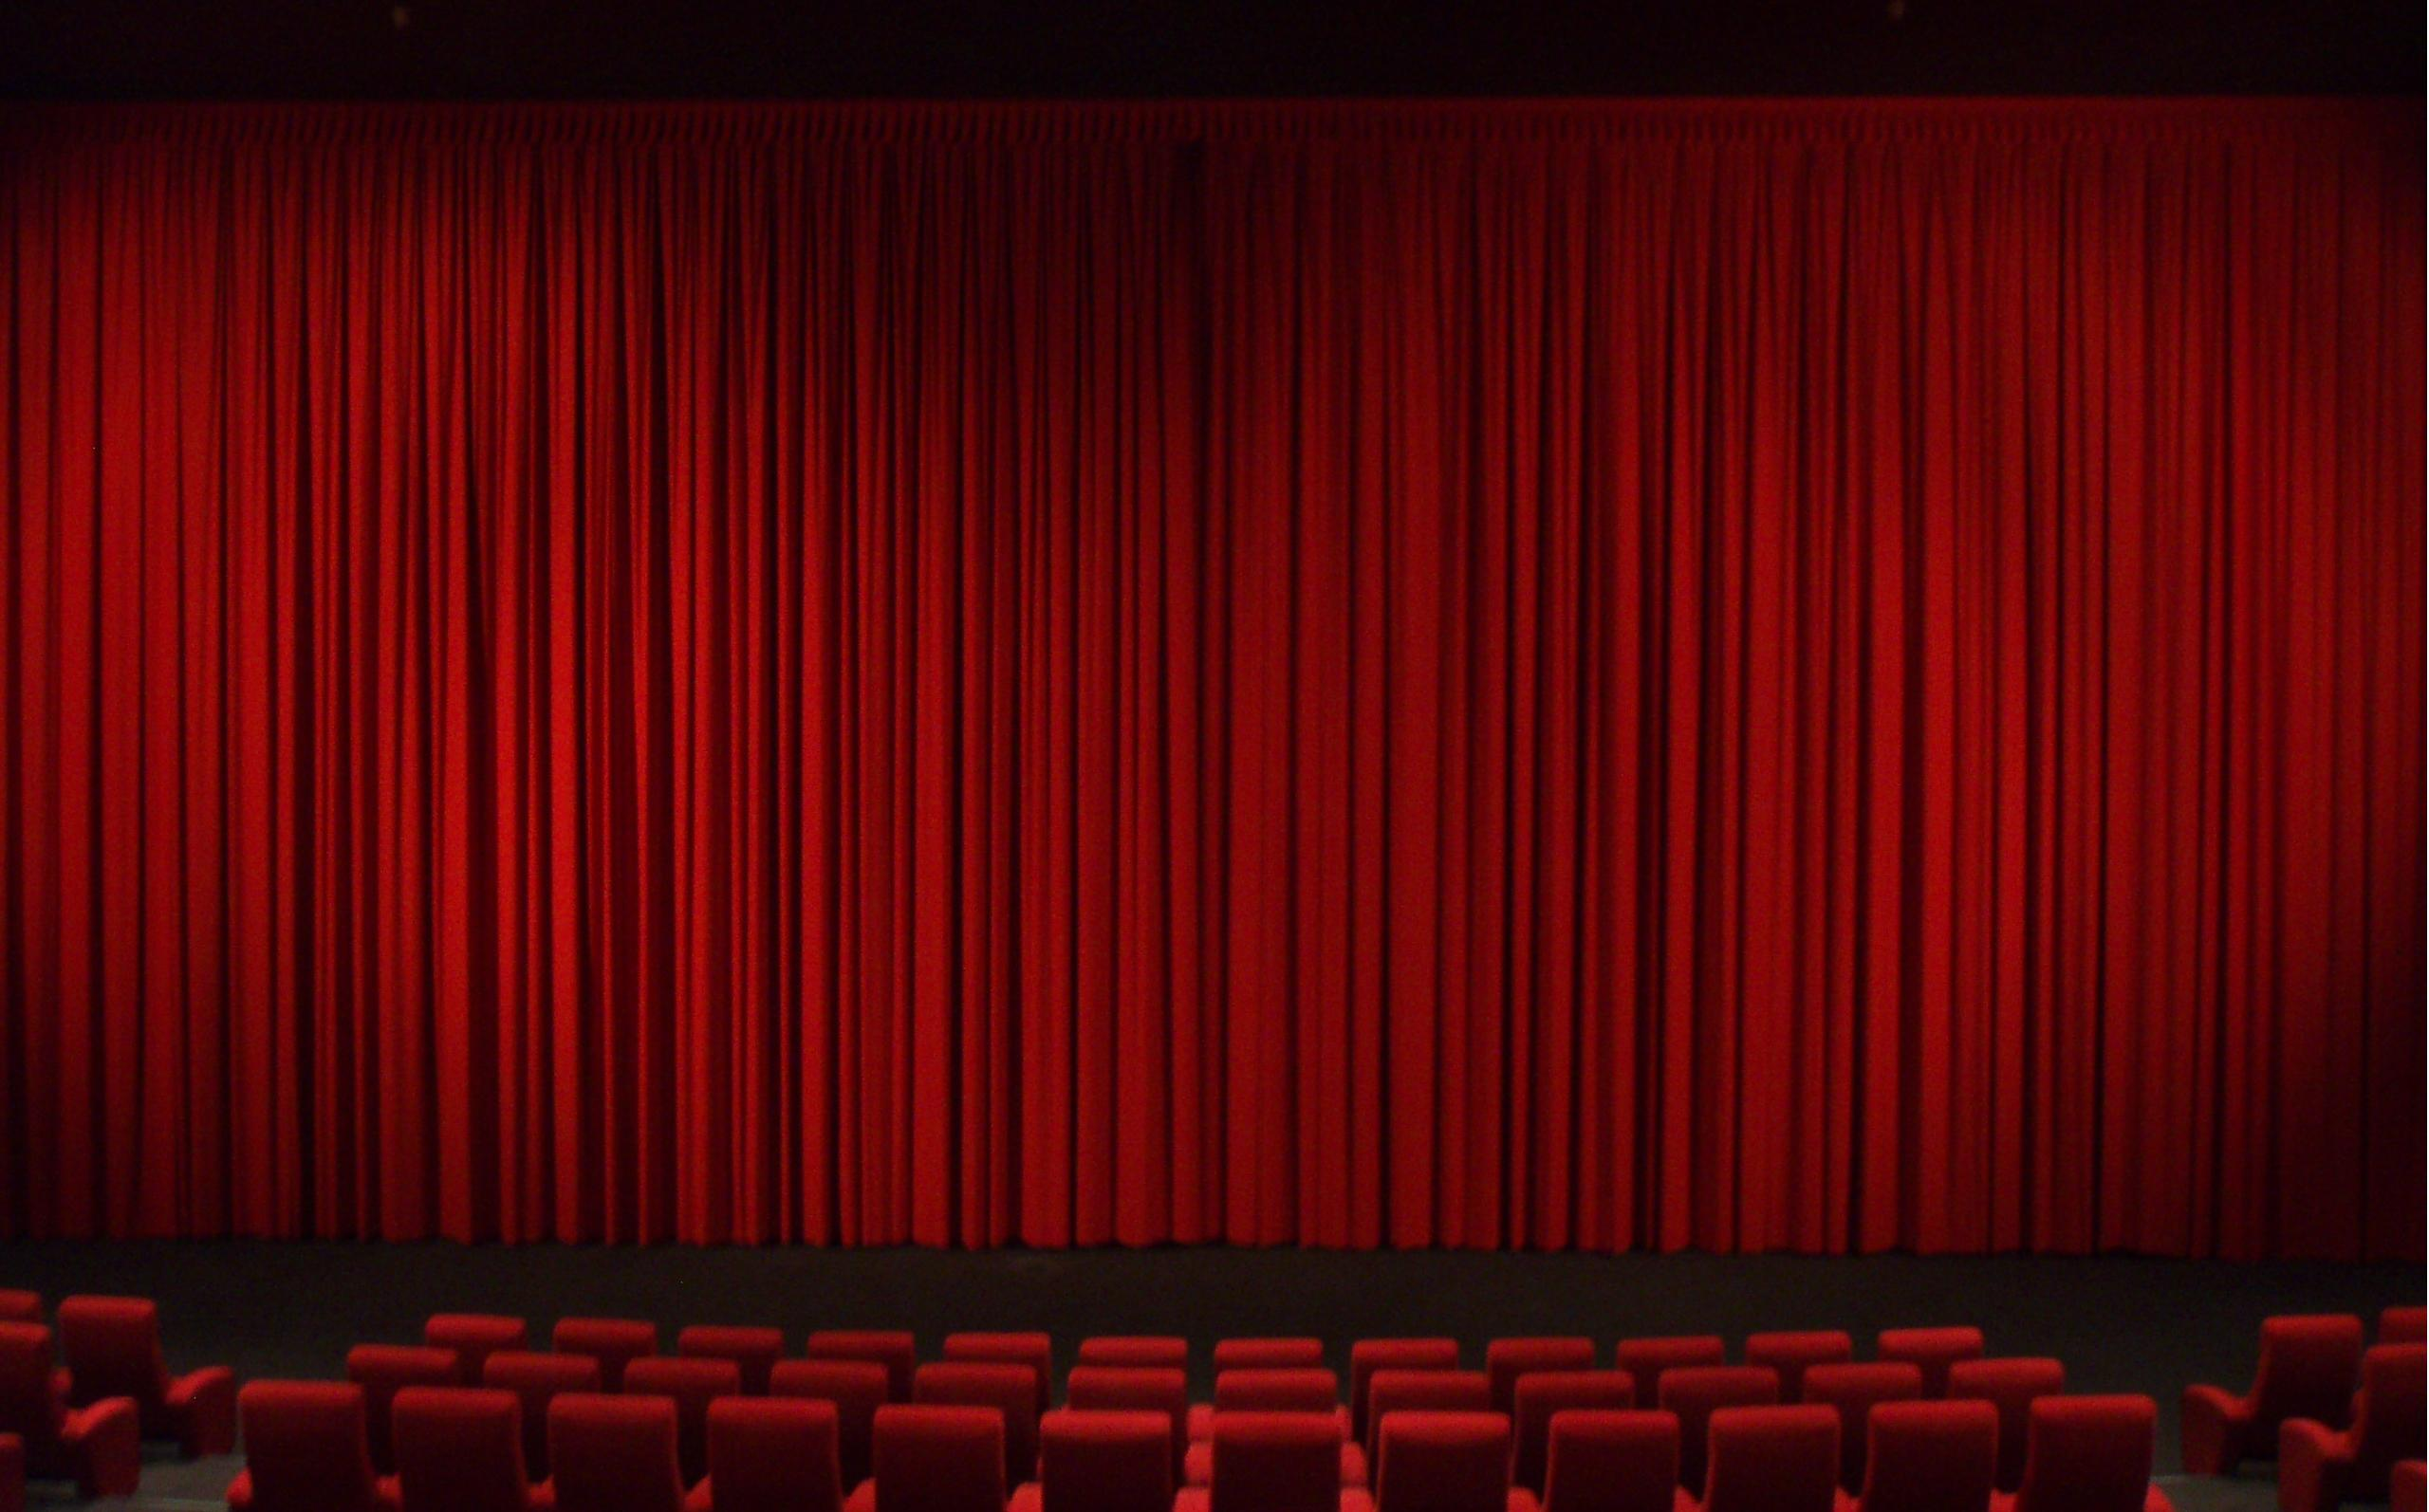 theatre wallpaper wallpapersafari - photo #3